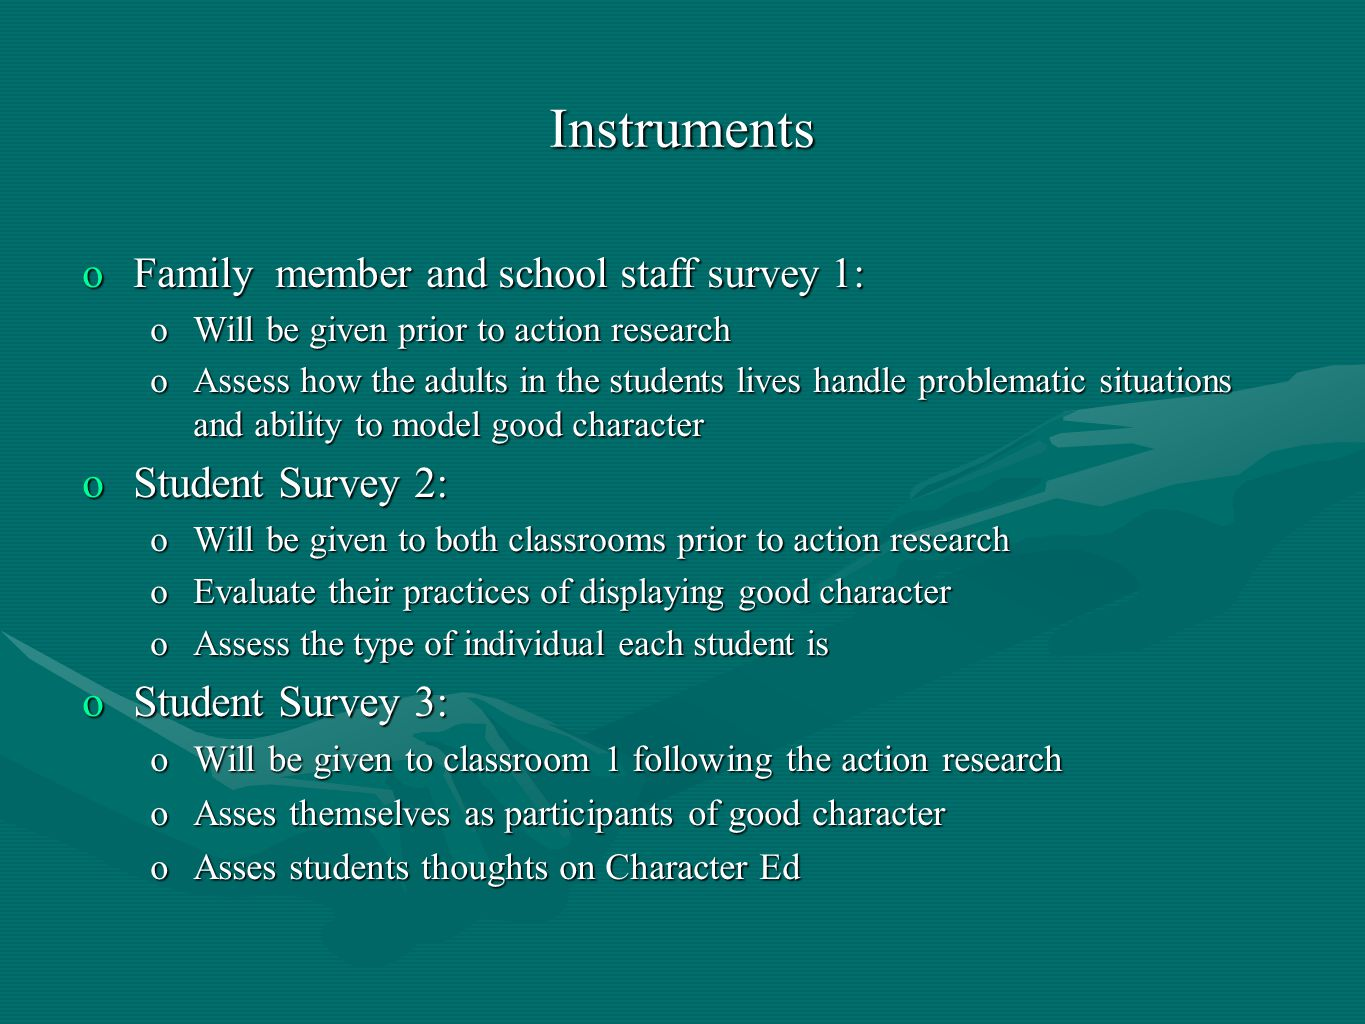 Instruments oFamily member and school staff survey 1: oWill be given prior to action research oAssess how the adults in the students lives handle problematic situations and ability to model good character oStudent Survey 2: oWill be given to both classrooms prior to action research oEvaluate their practices of displaying good character oAssess the type of individual each student is oStudent Survey 3: oWill be given to classroom 1 following the action research oAsses themselves as participants of good character oAsses students thoughts on Character Ed